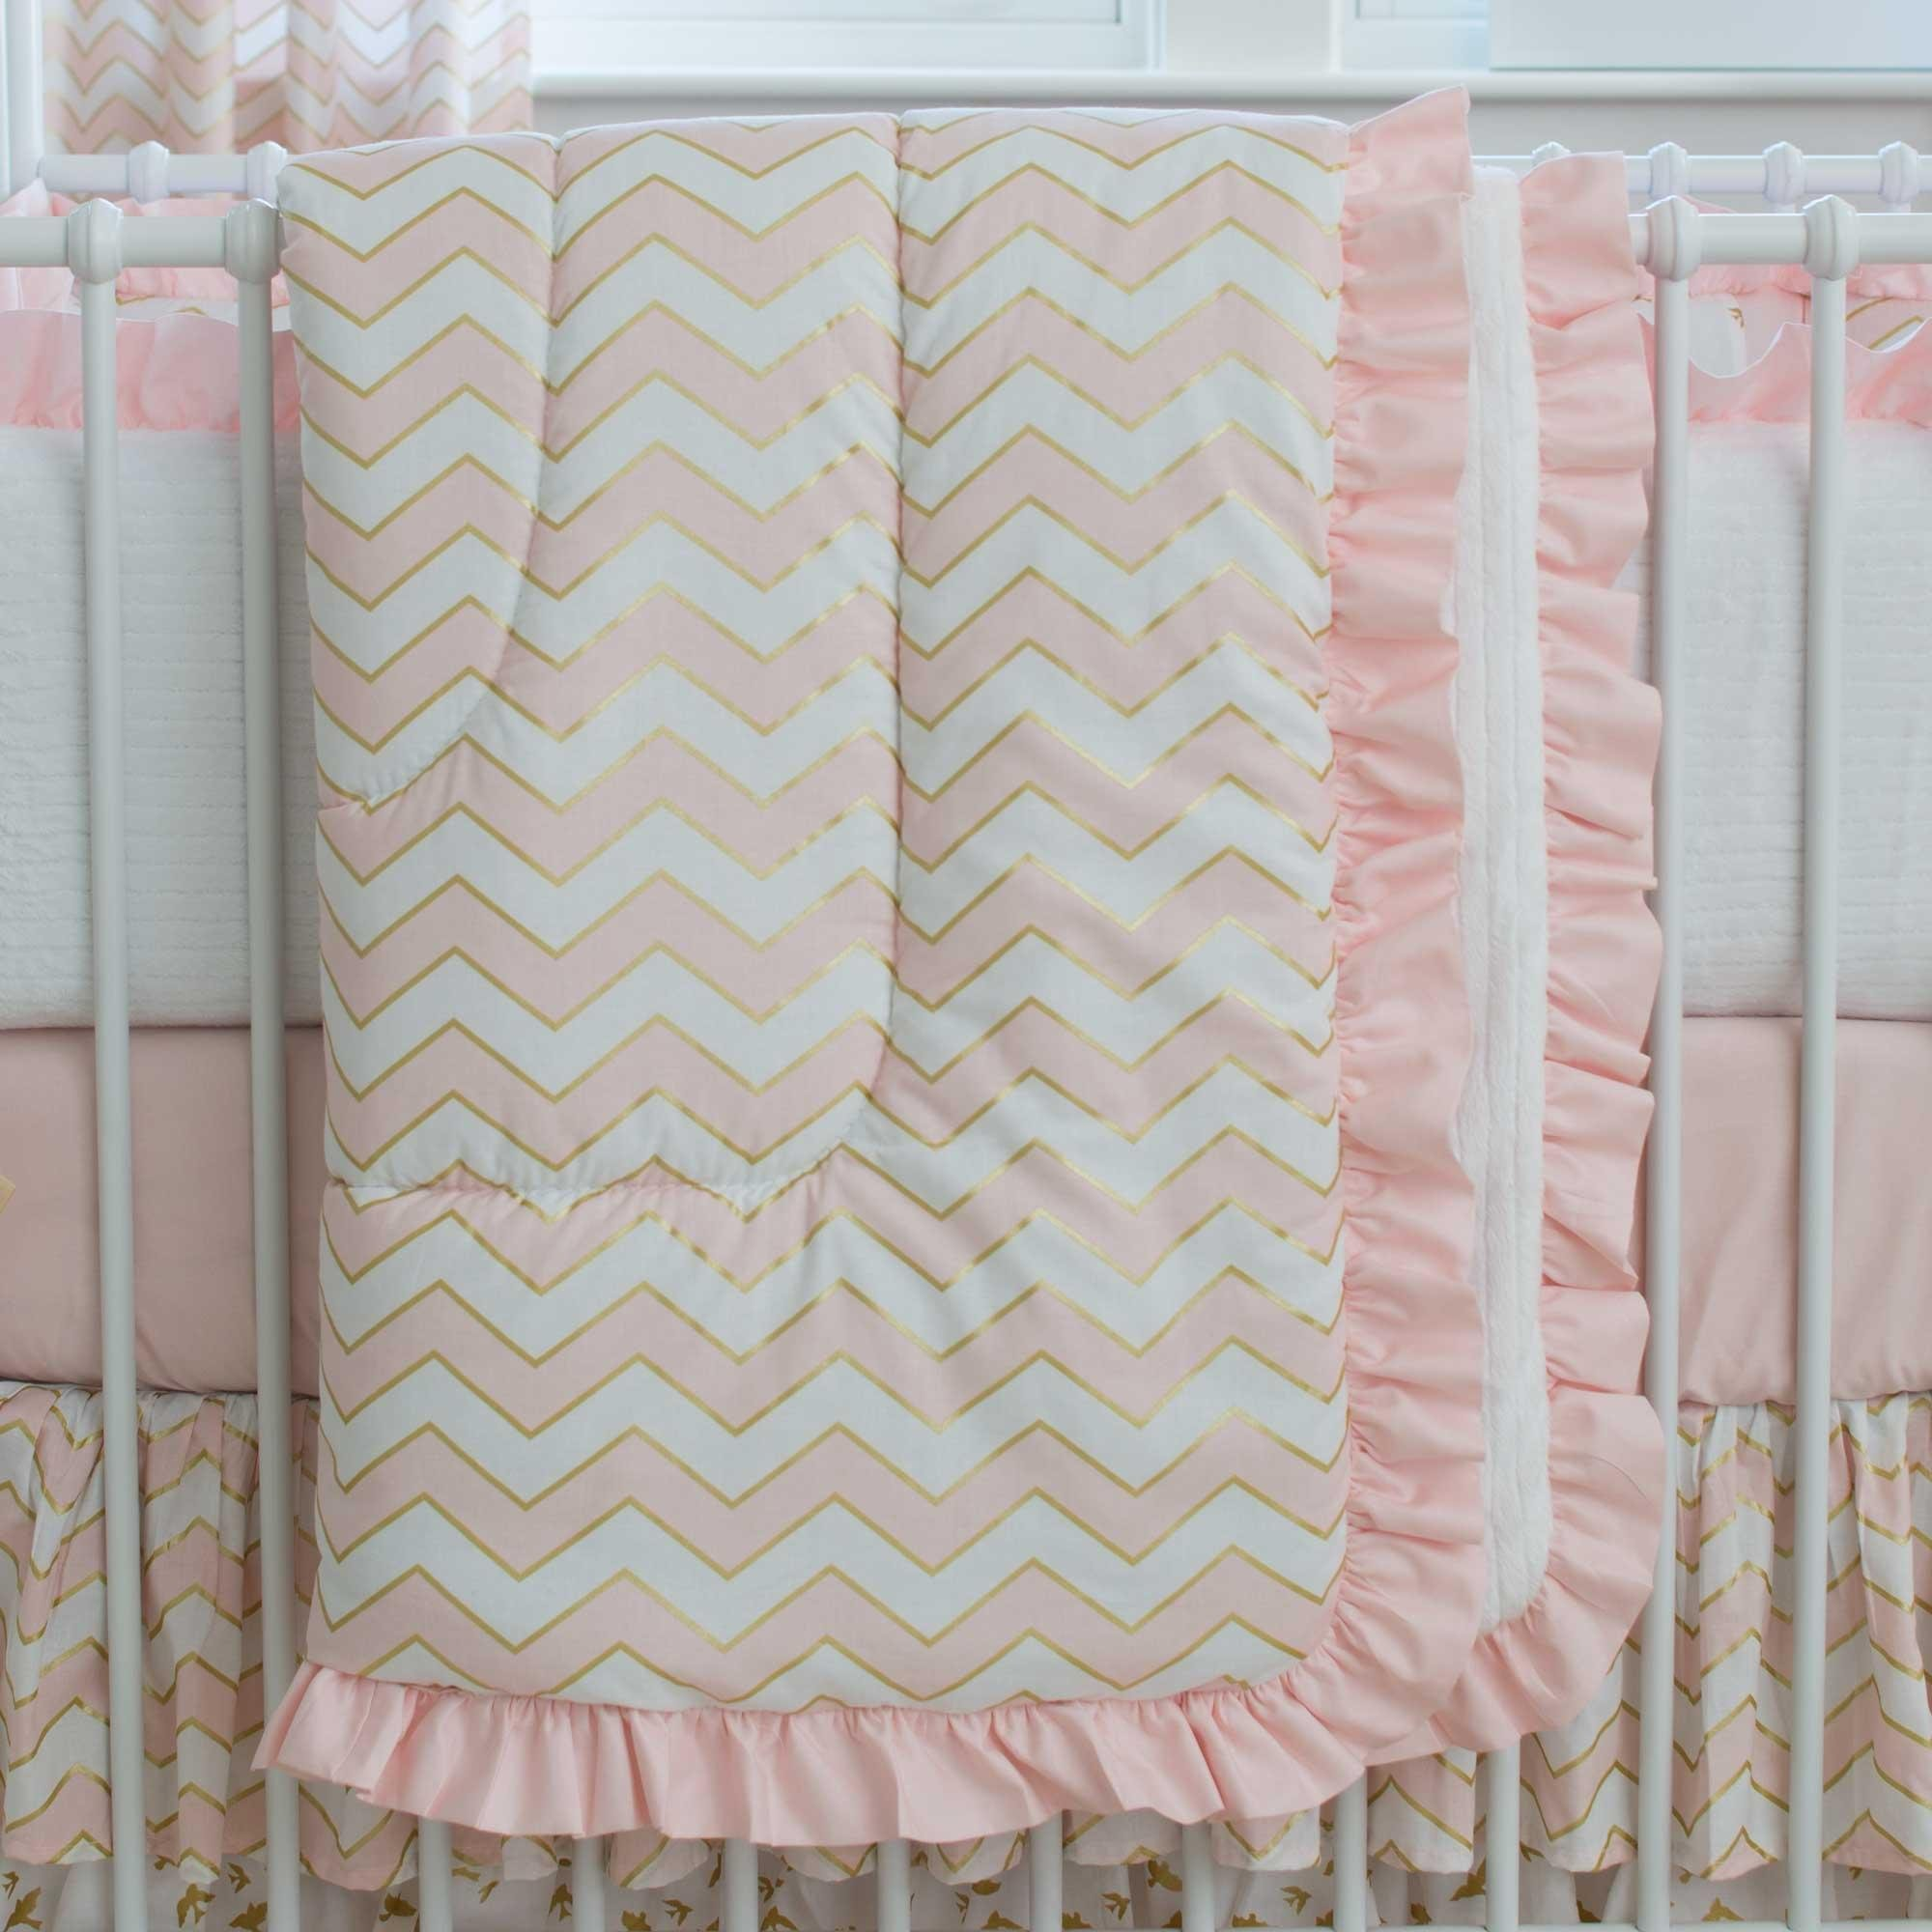 Carousel Designs Pale Pink and Gold Chevron Crib Comforter